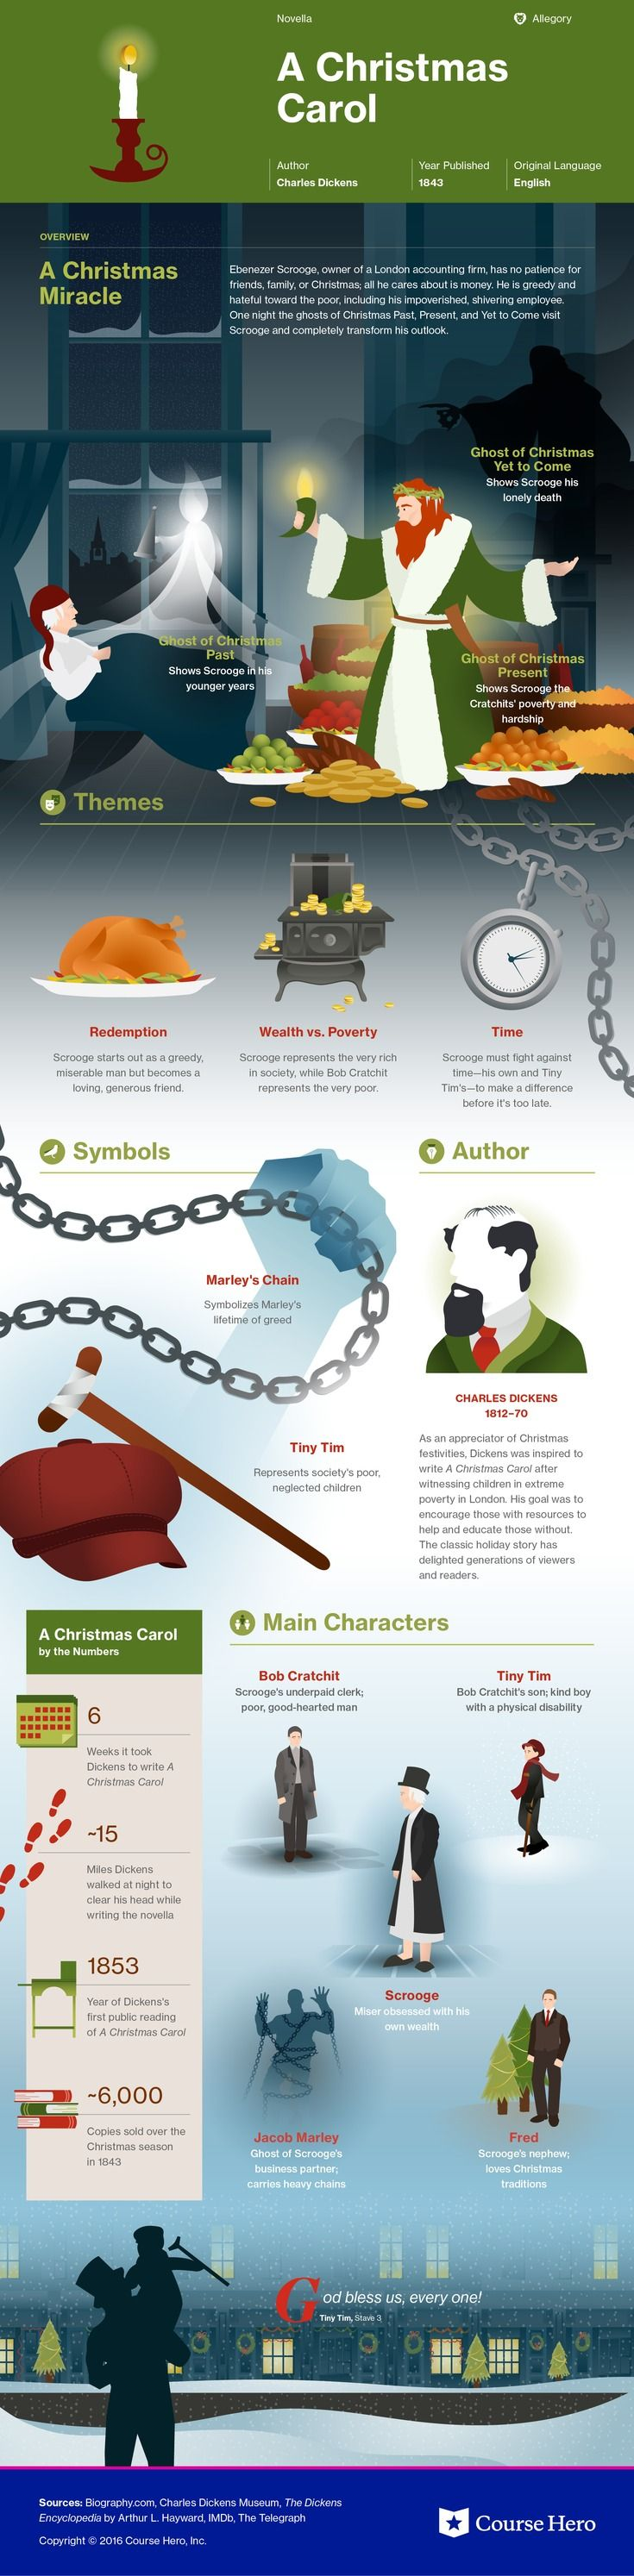 This @CourseHero infographic on A Christmas Carol is both visually stunning and informative!